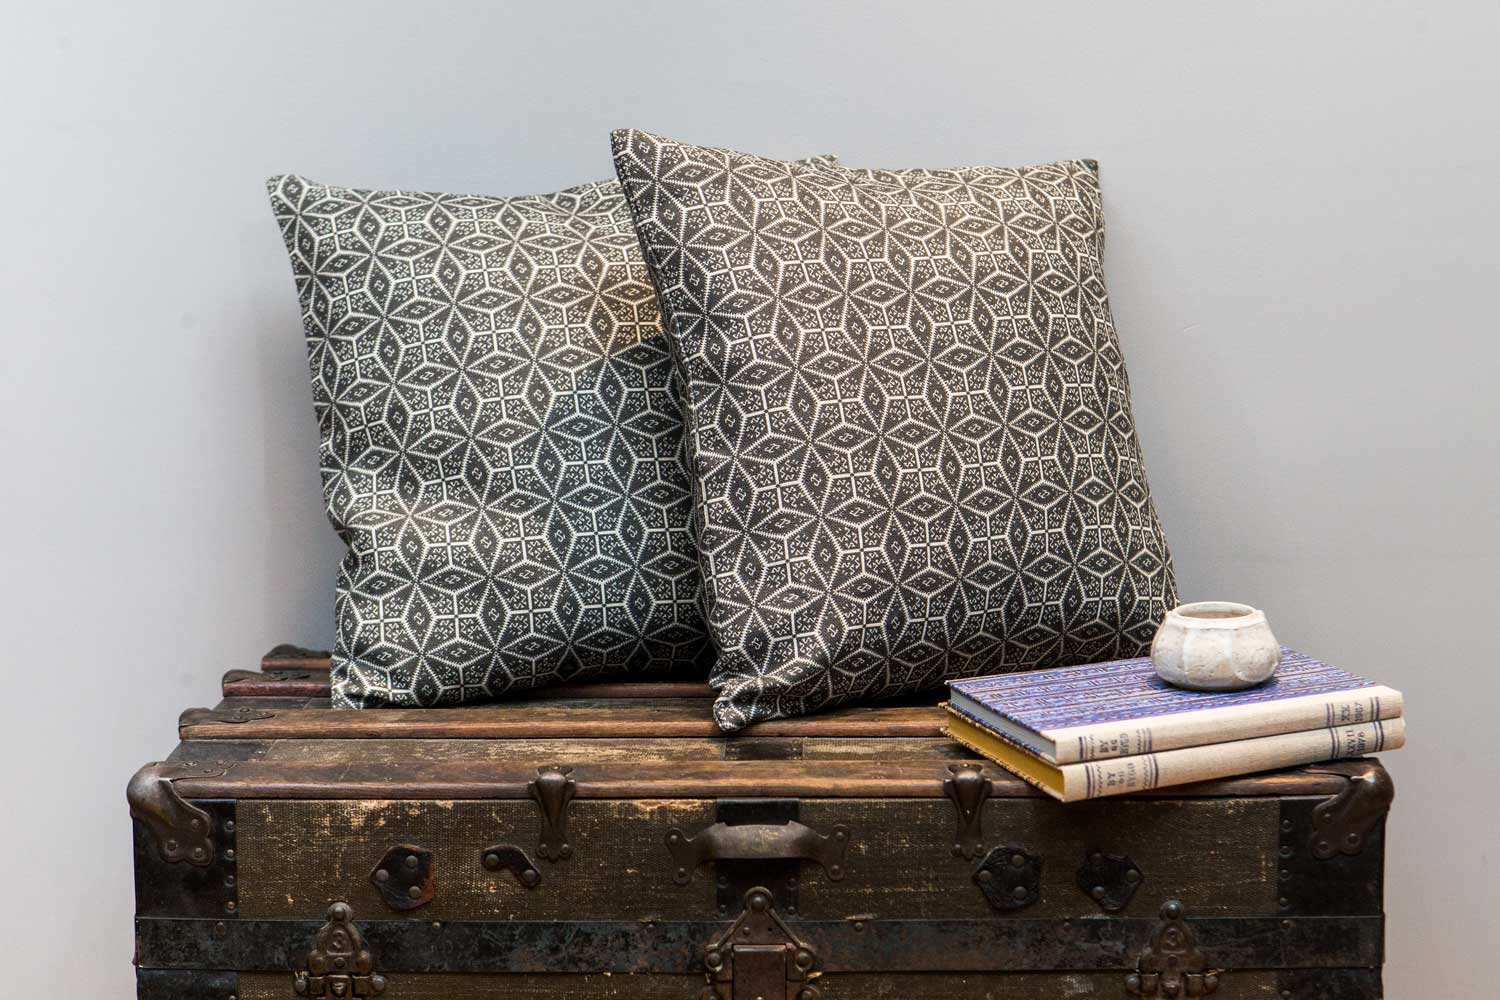 Abbot-Atlas-naxos-stone-fabric-linen-printed-pillow-cushion-trunk.jpg